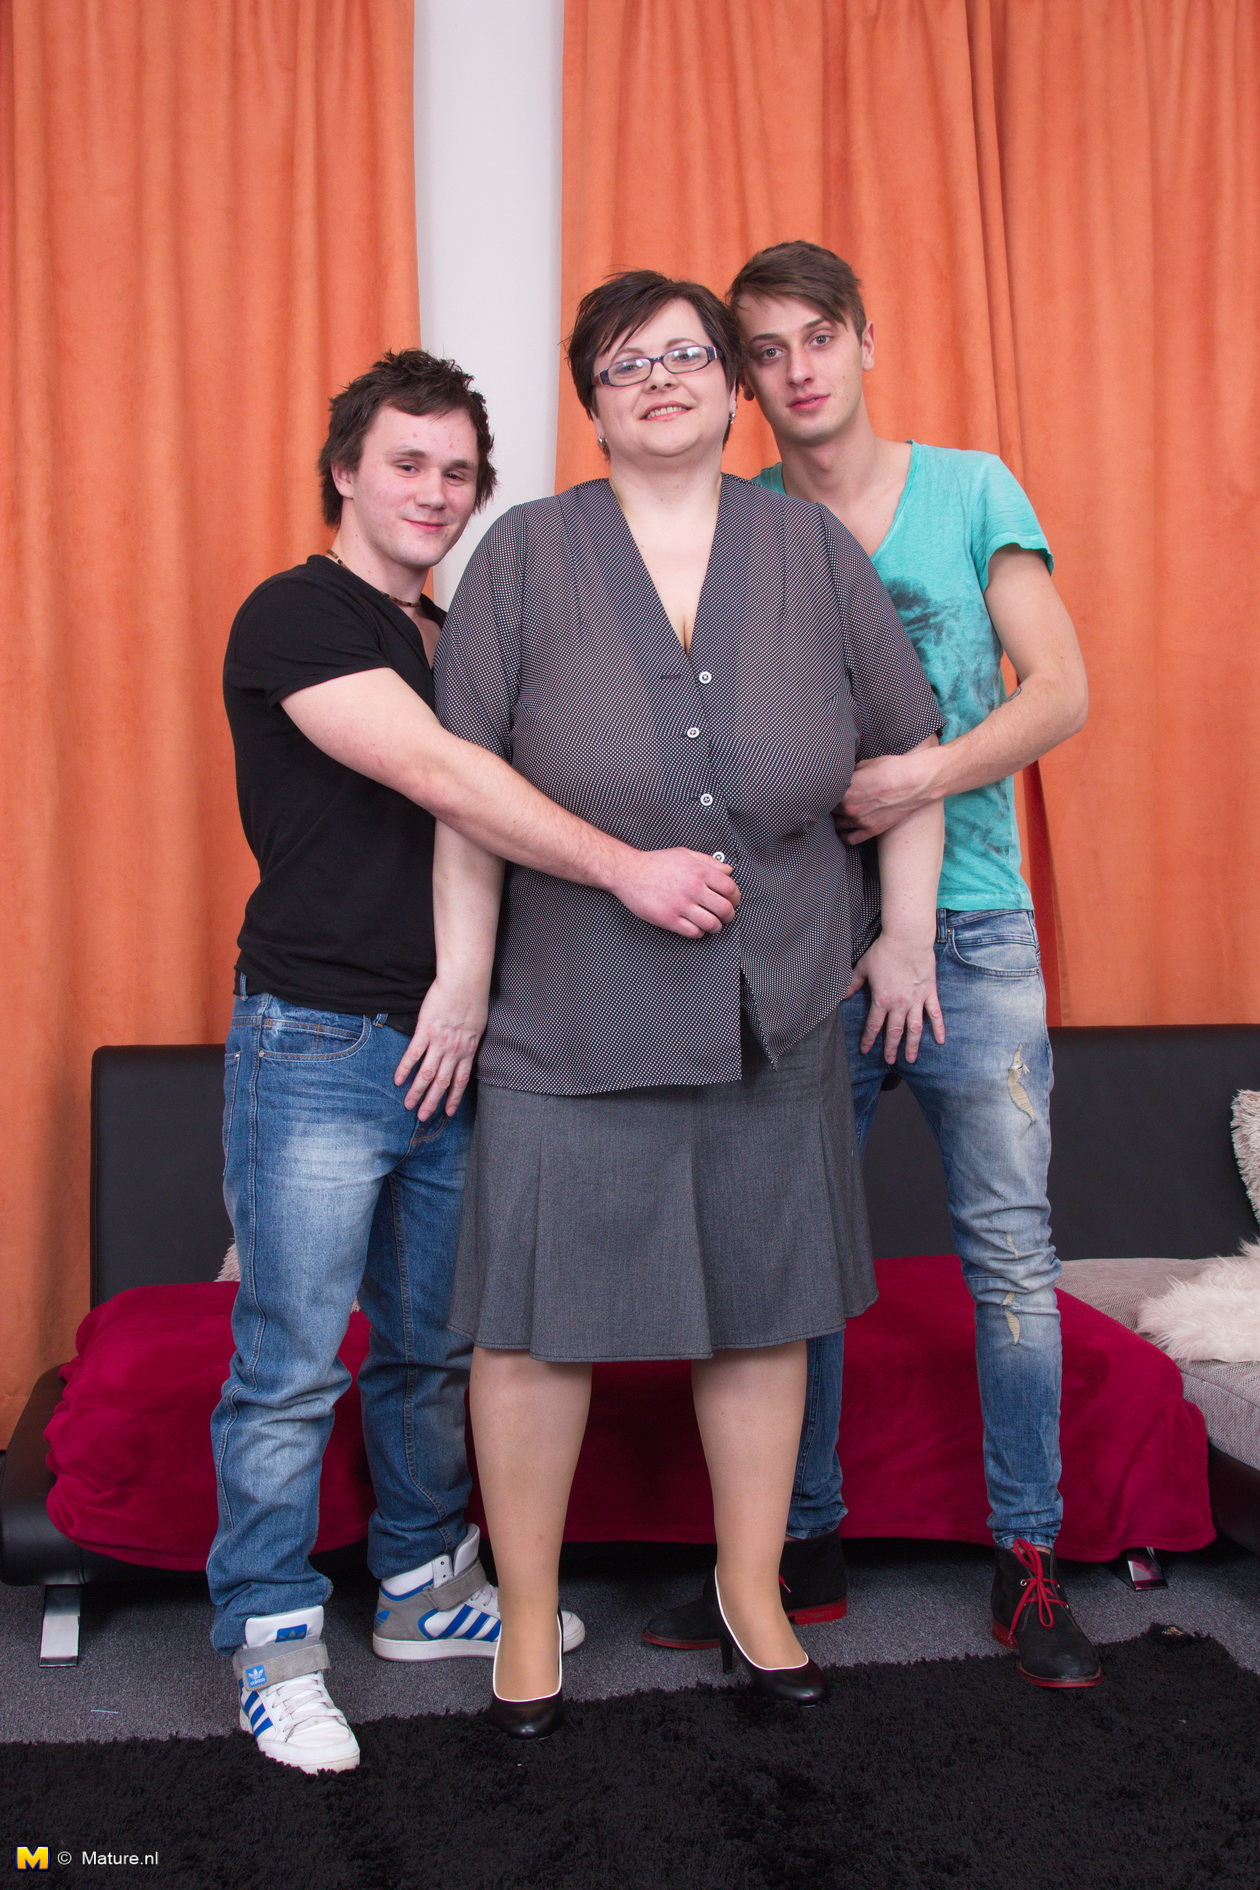 ugly bbw granny got gangbanged by two 20 years old unexperienced horny dudes